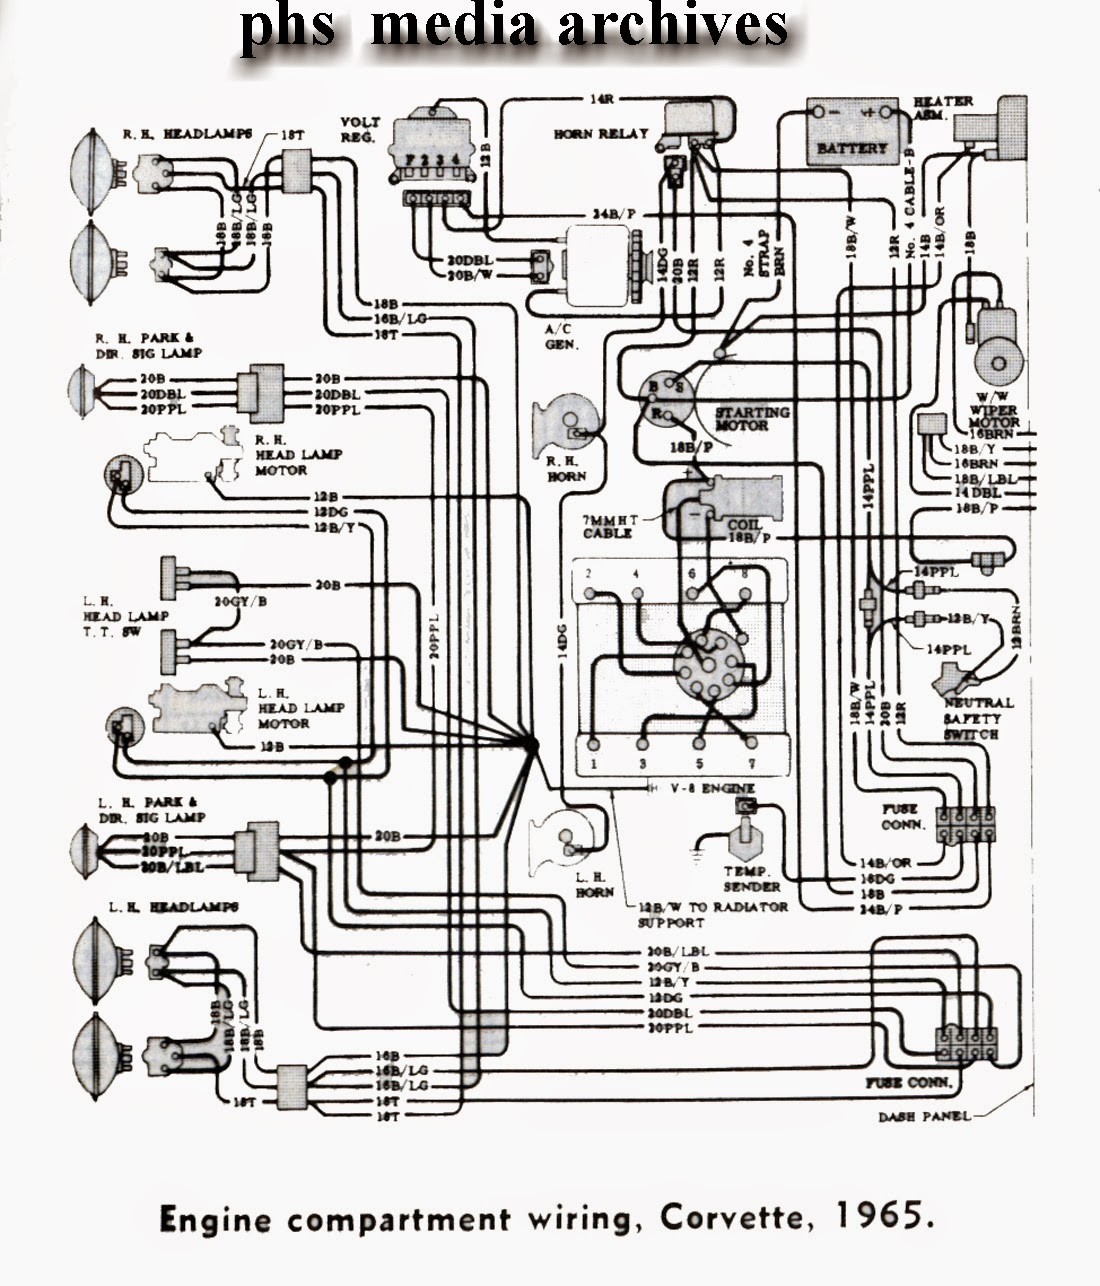 1965 dodge dart fuse box wiring diagram origin dodge dart headlight fuse 1965 dodge dart fuse [ 1100 x 1286 Pixel ]